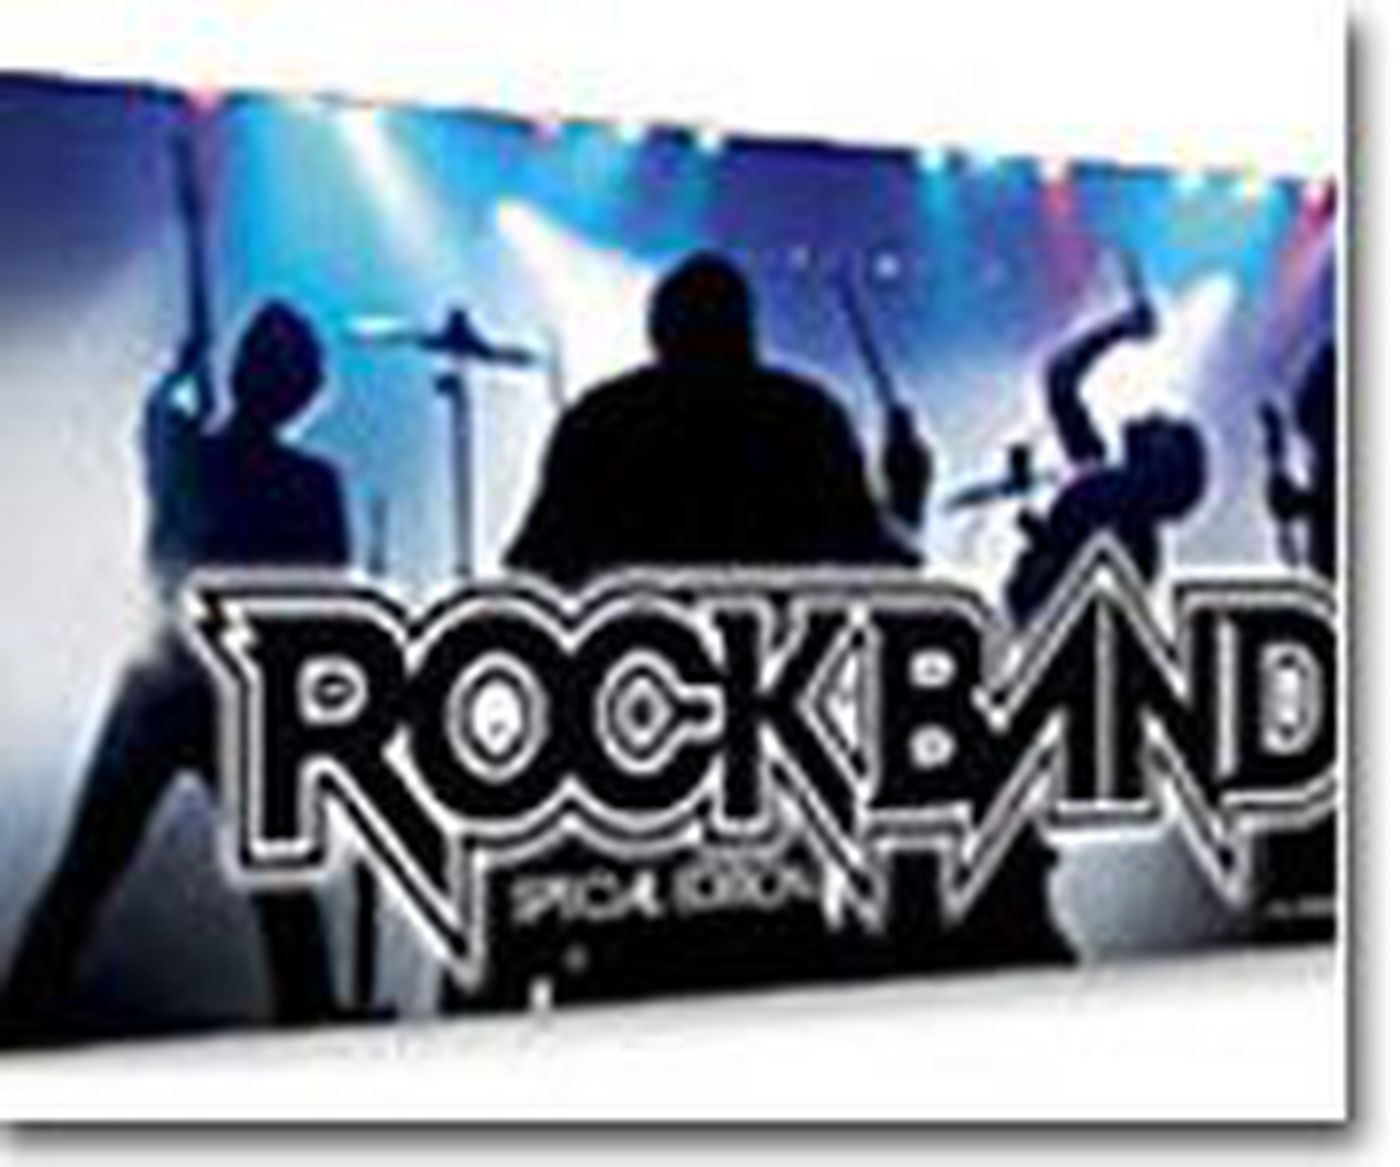 Rock Band Xbox 360 and PS3 Bundle to Go For $169 99, PS2